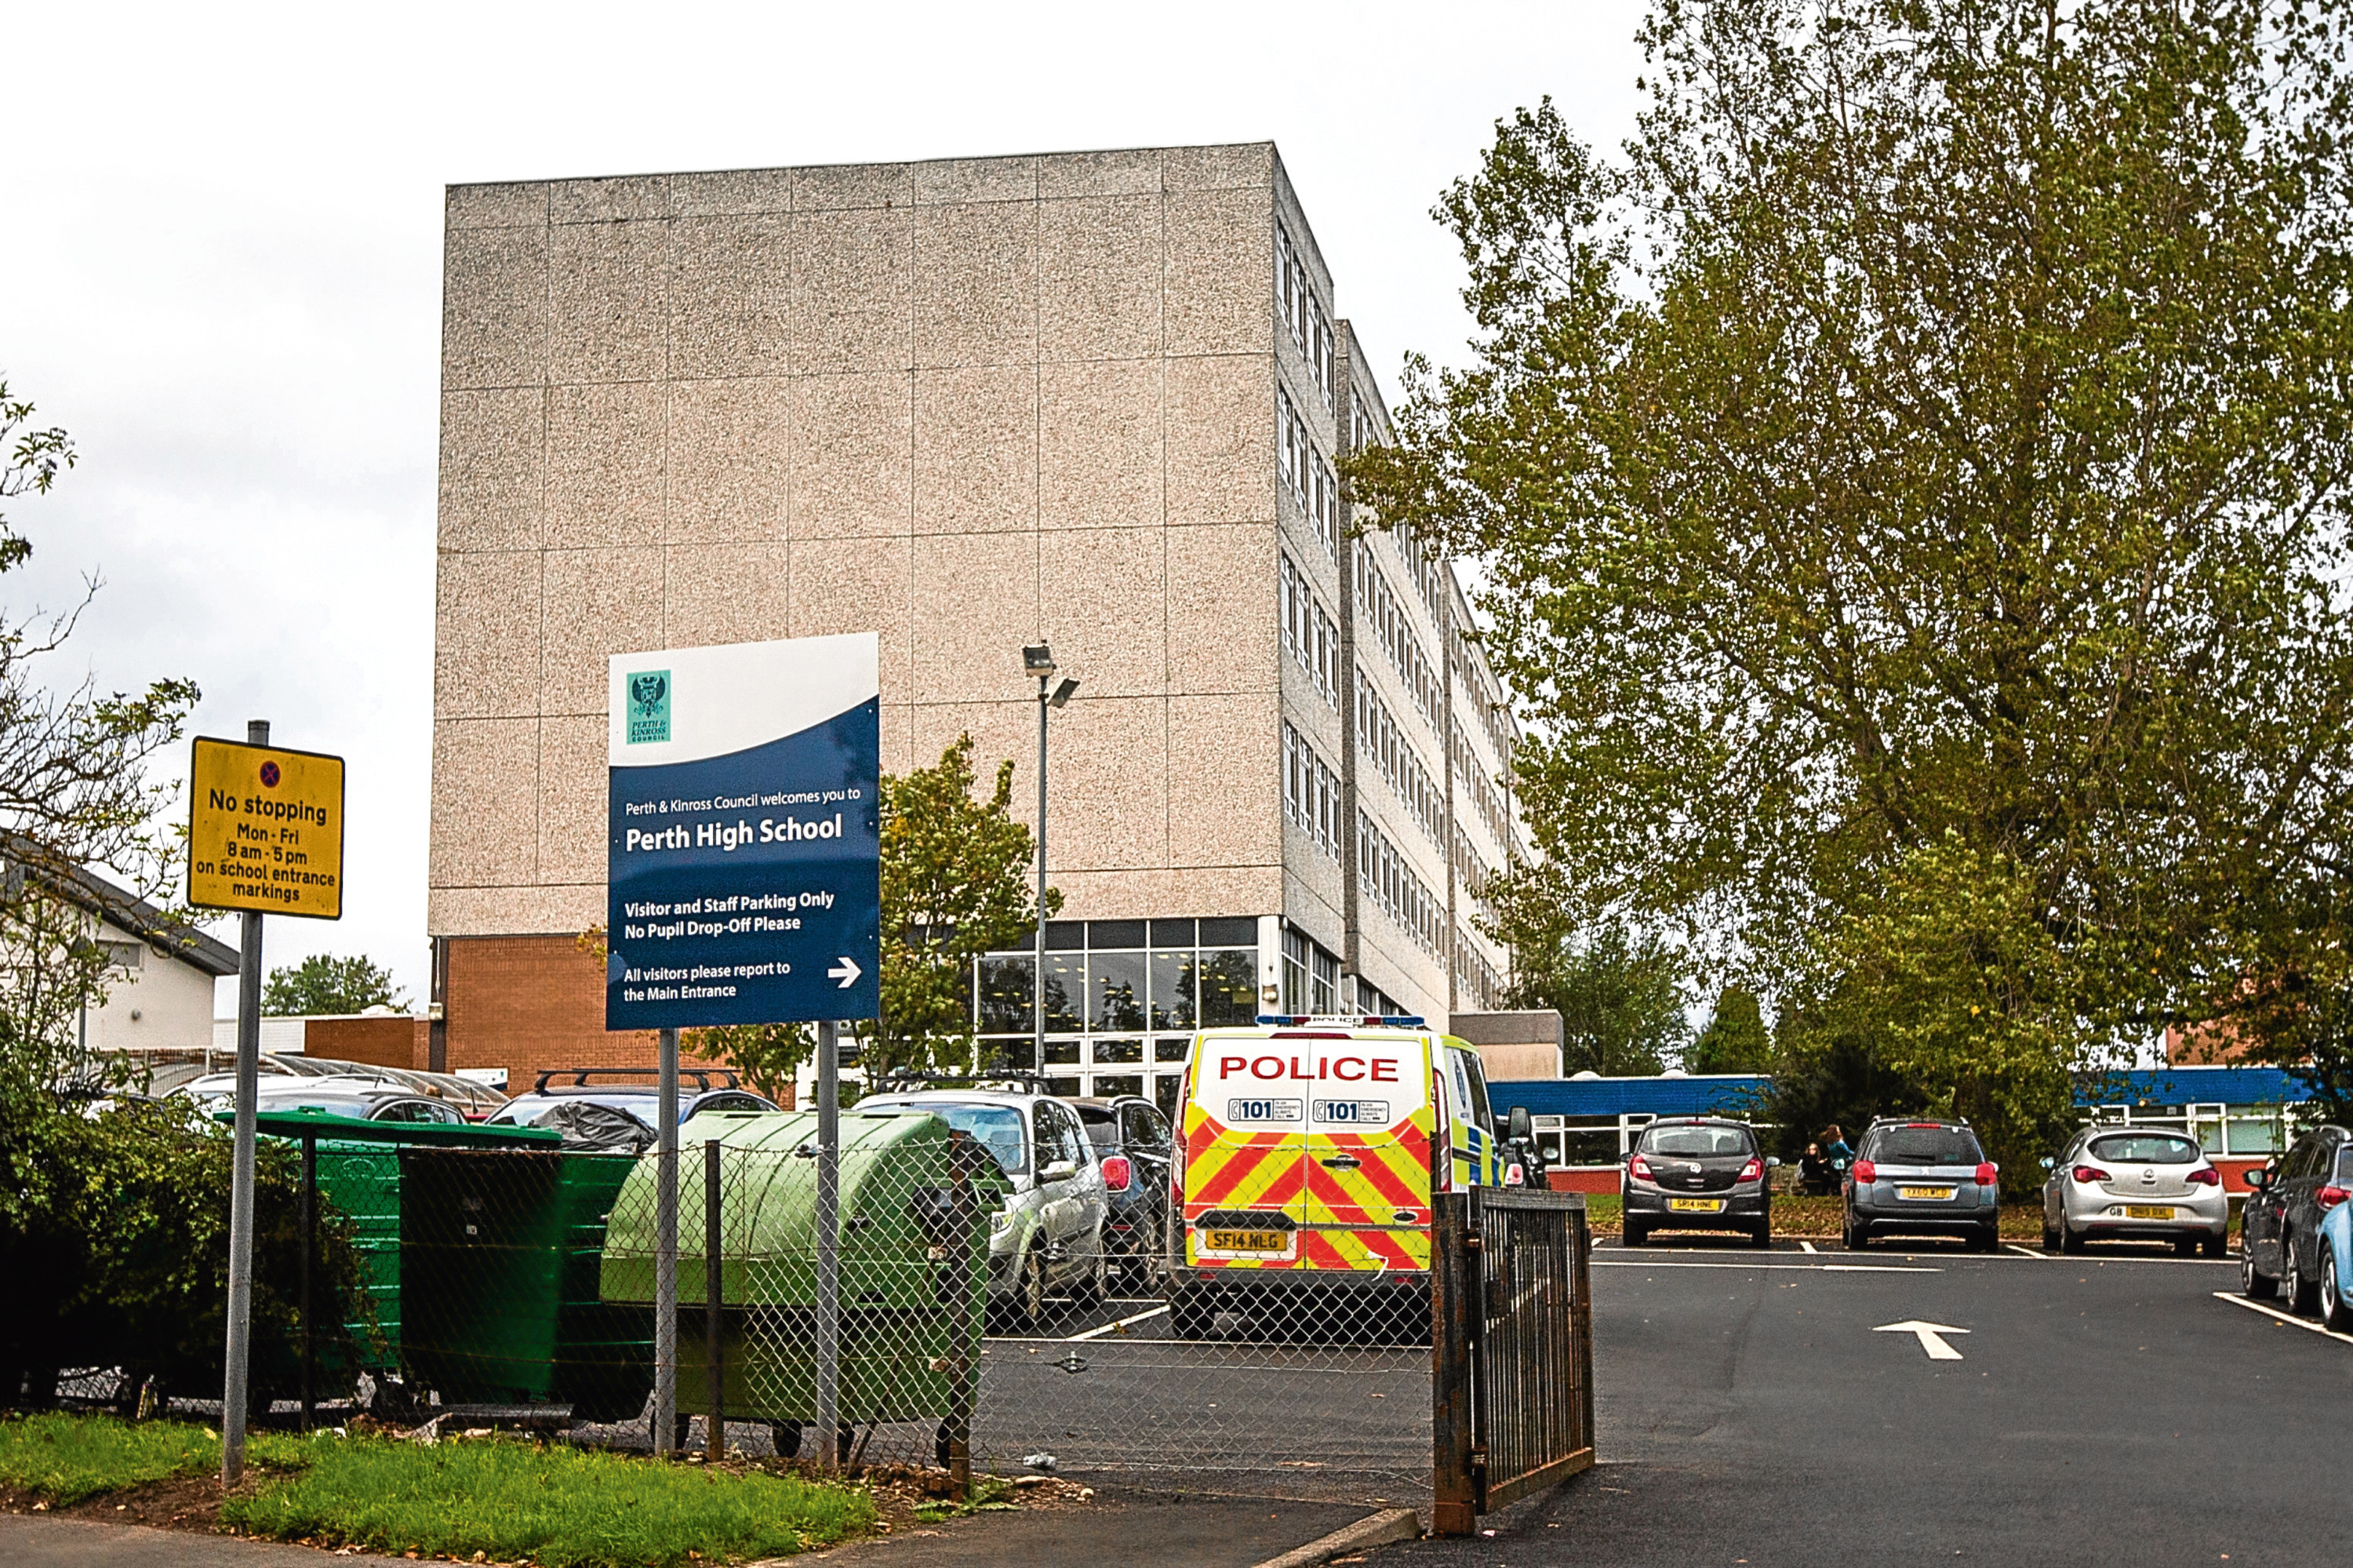 Courier News - Perth - Richard Burdge Story. Pupils setting off alarms have been set off at Perth High School. Picture shows general exterior view of Perth High School. Perth High School, Perth. Wednesday 27th September 2017.